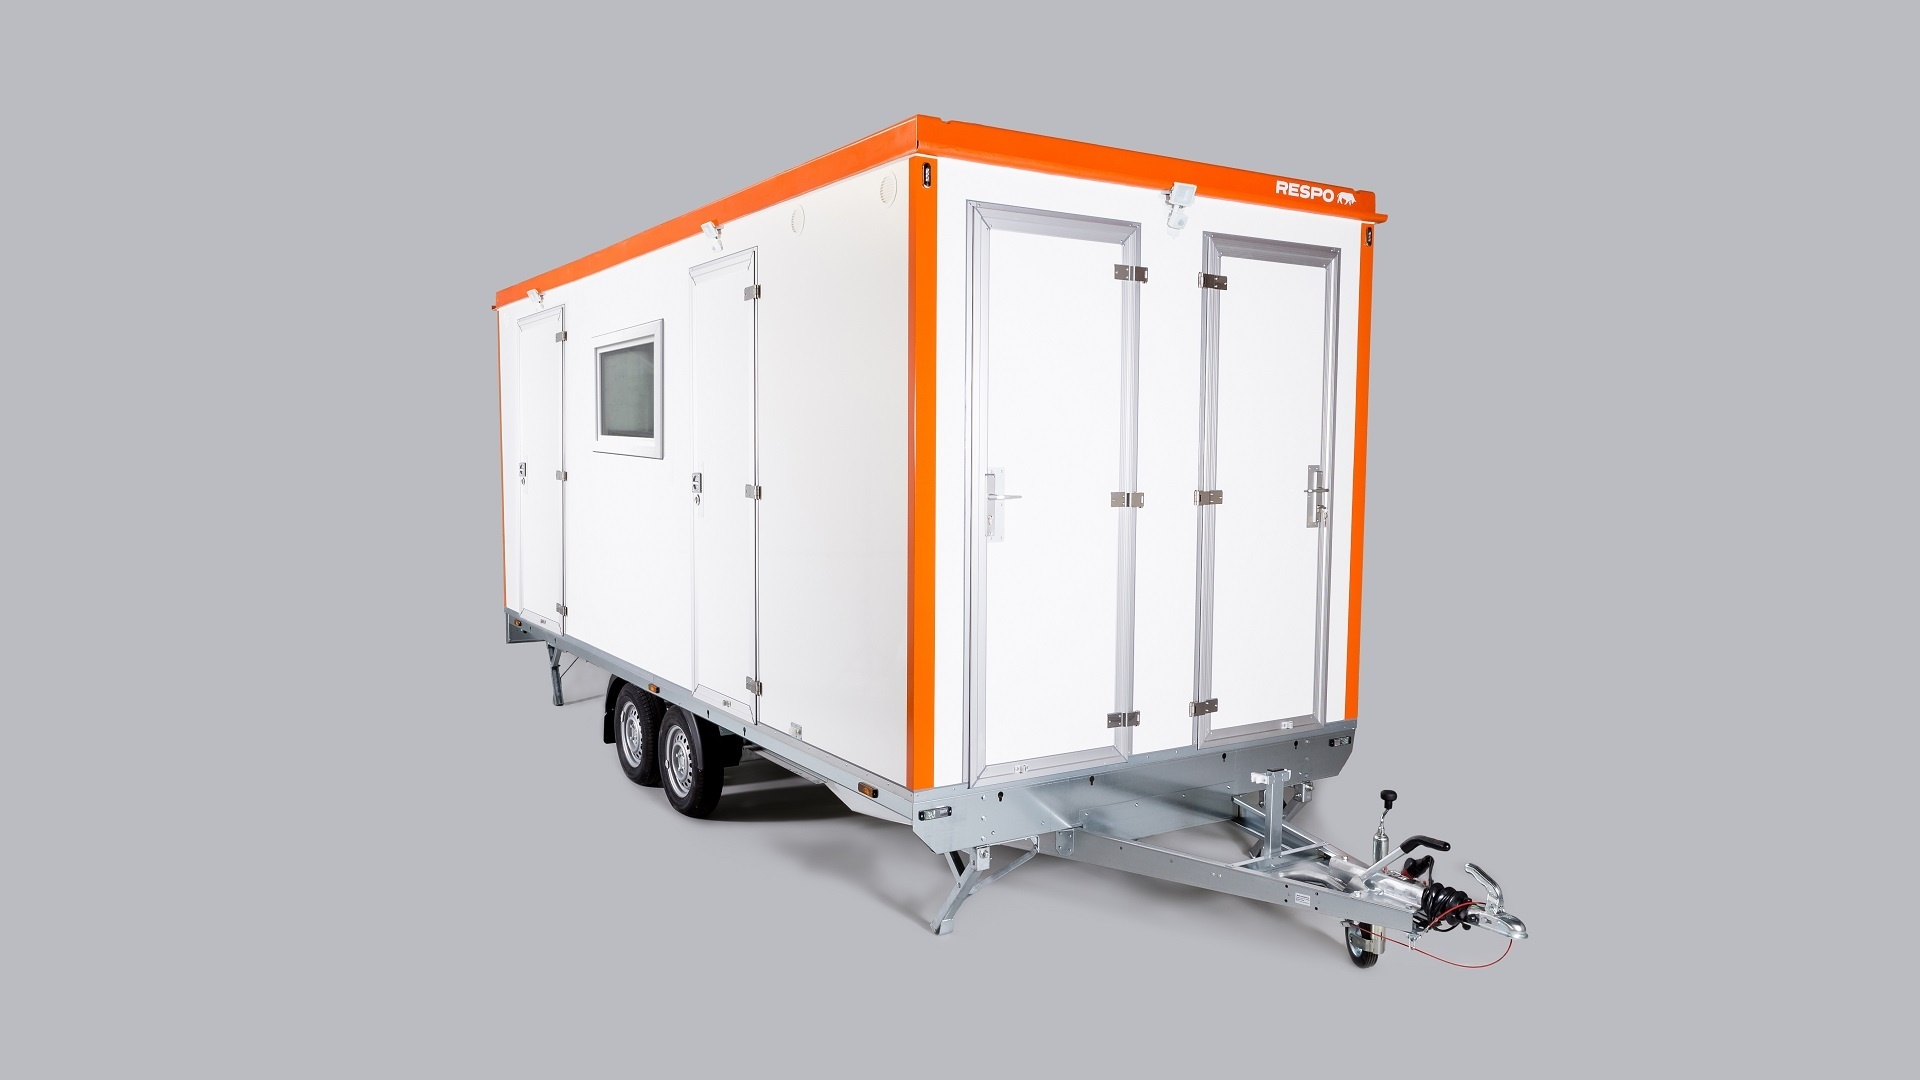 Respo Mobile facilities